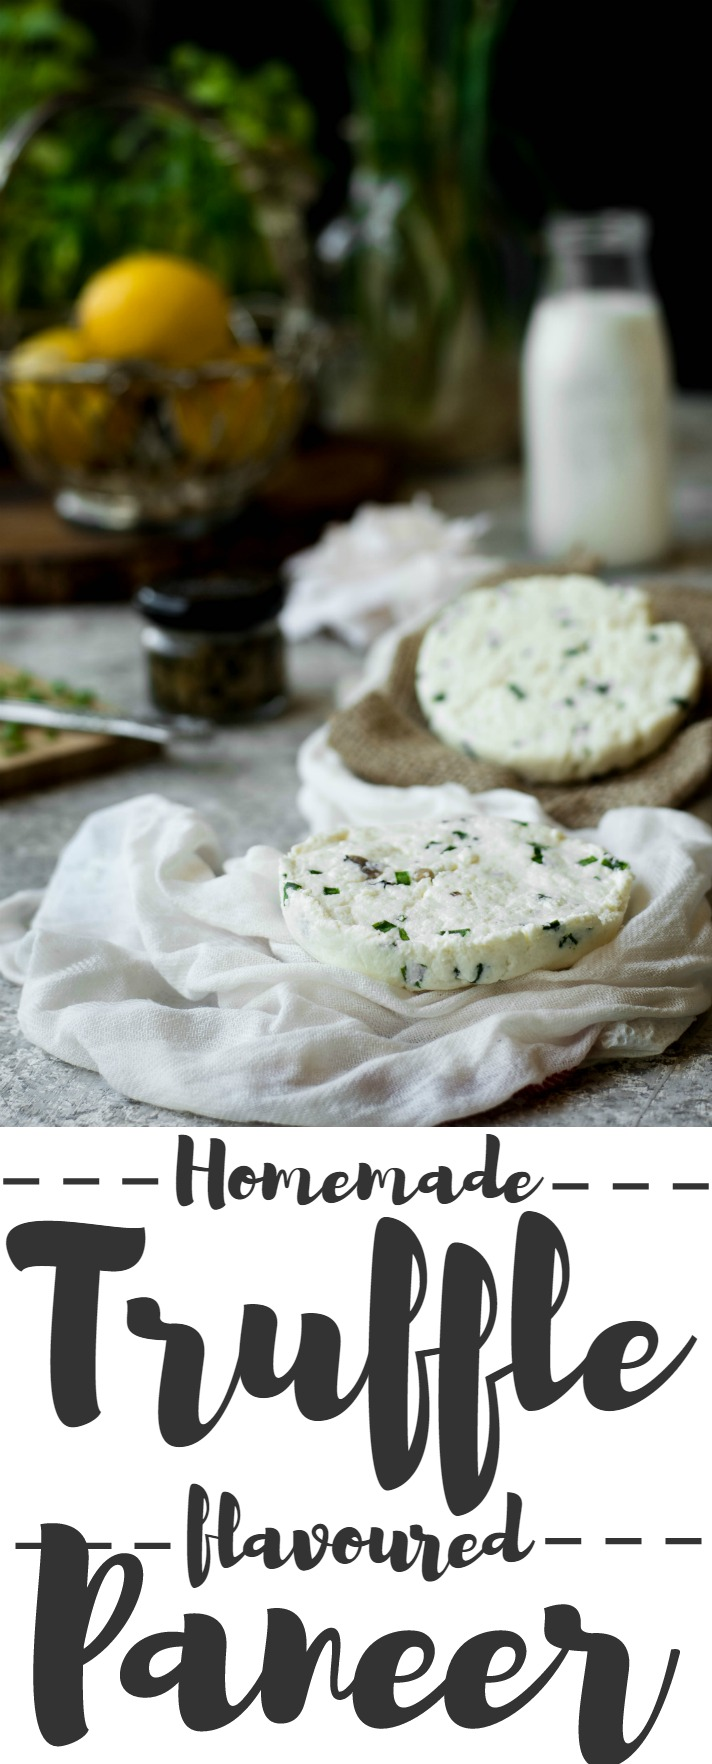 This homemade Truffle flavoured Paneer (Indian Cottage Cheese) is incredibly simple to make, and has a wonderfully intoxicating aroma & taste. Gluten-free. Vegetarian.